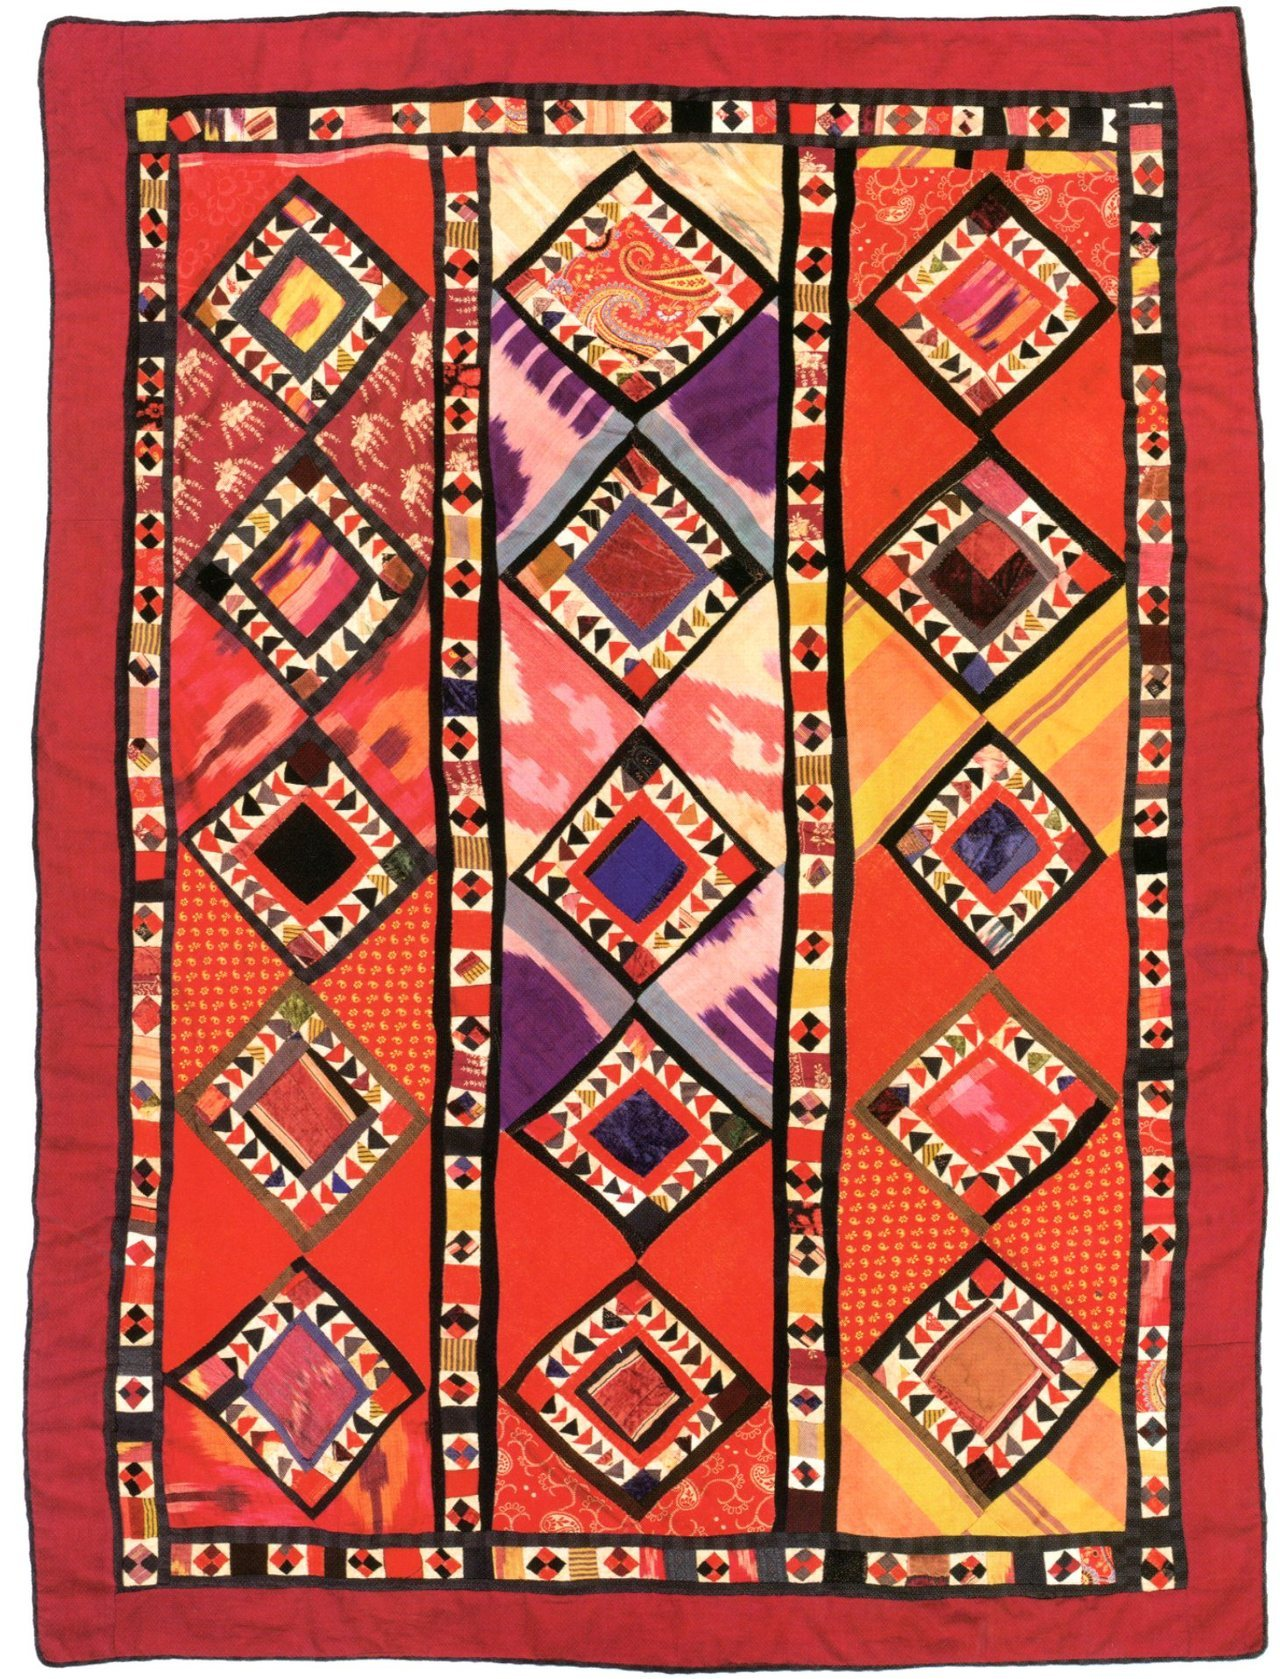 Susan Meller, Russian Textiles: Printed Cloth for the Bazaars of Central Asia, 2007